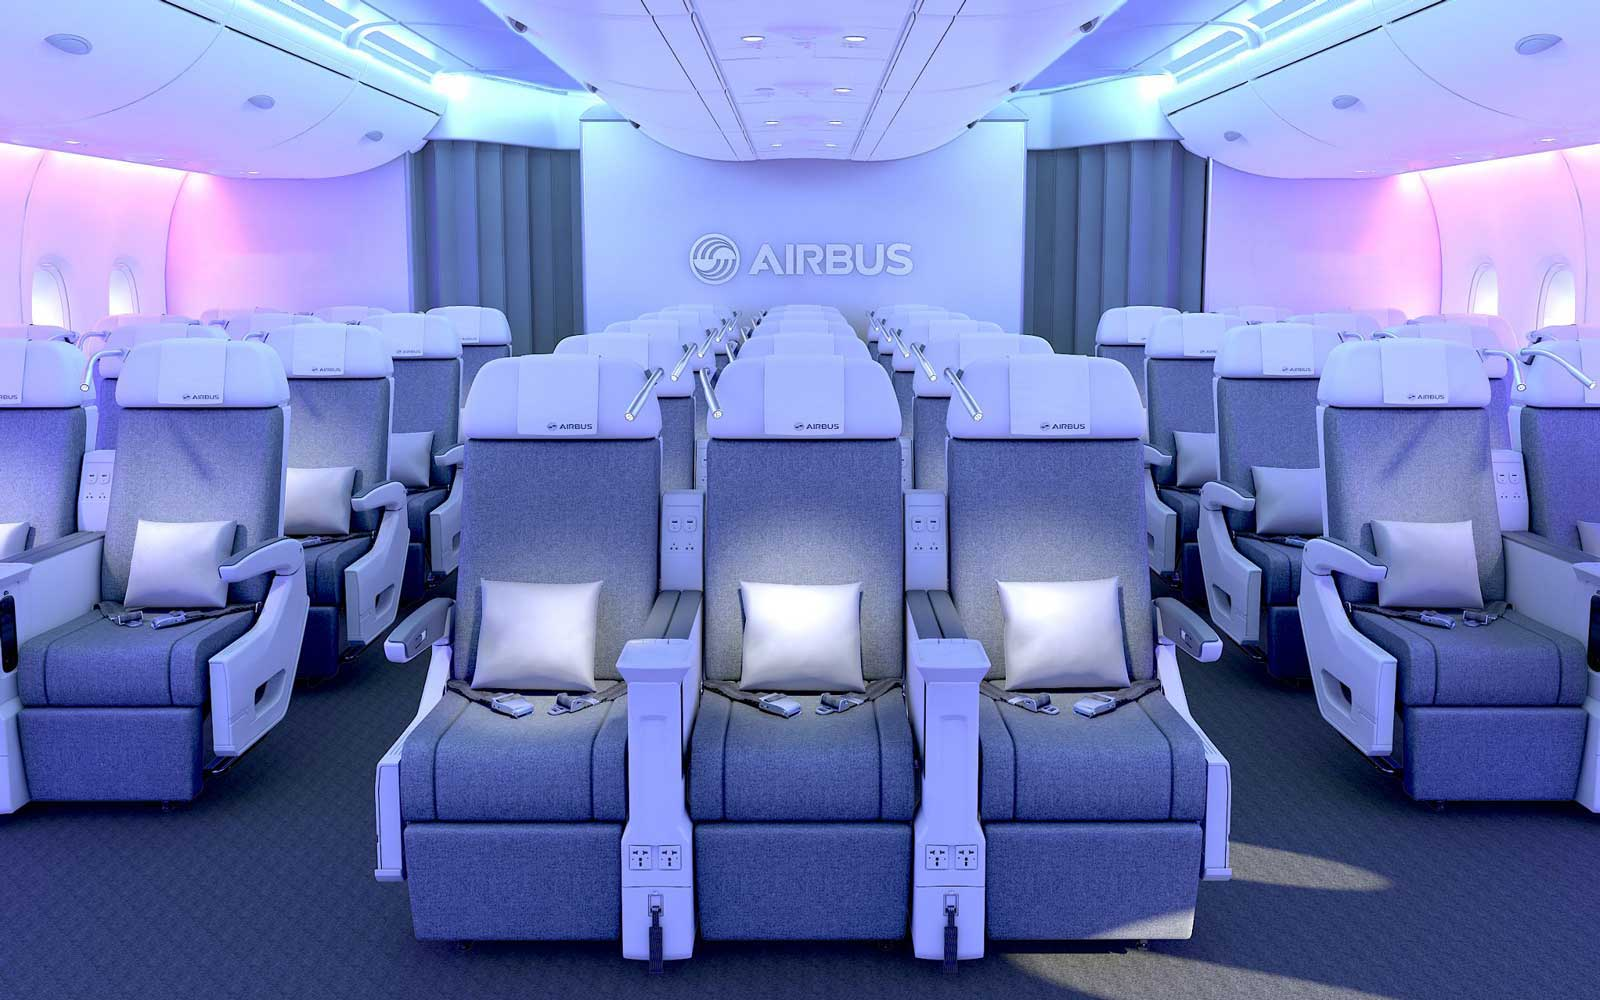 Interior of an Airbus plane